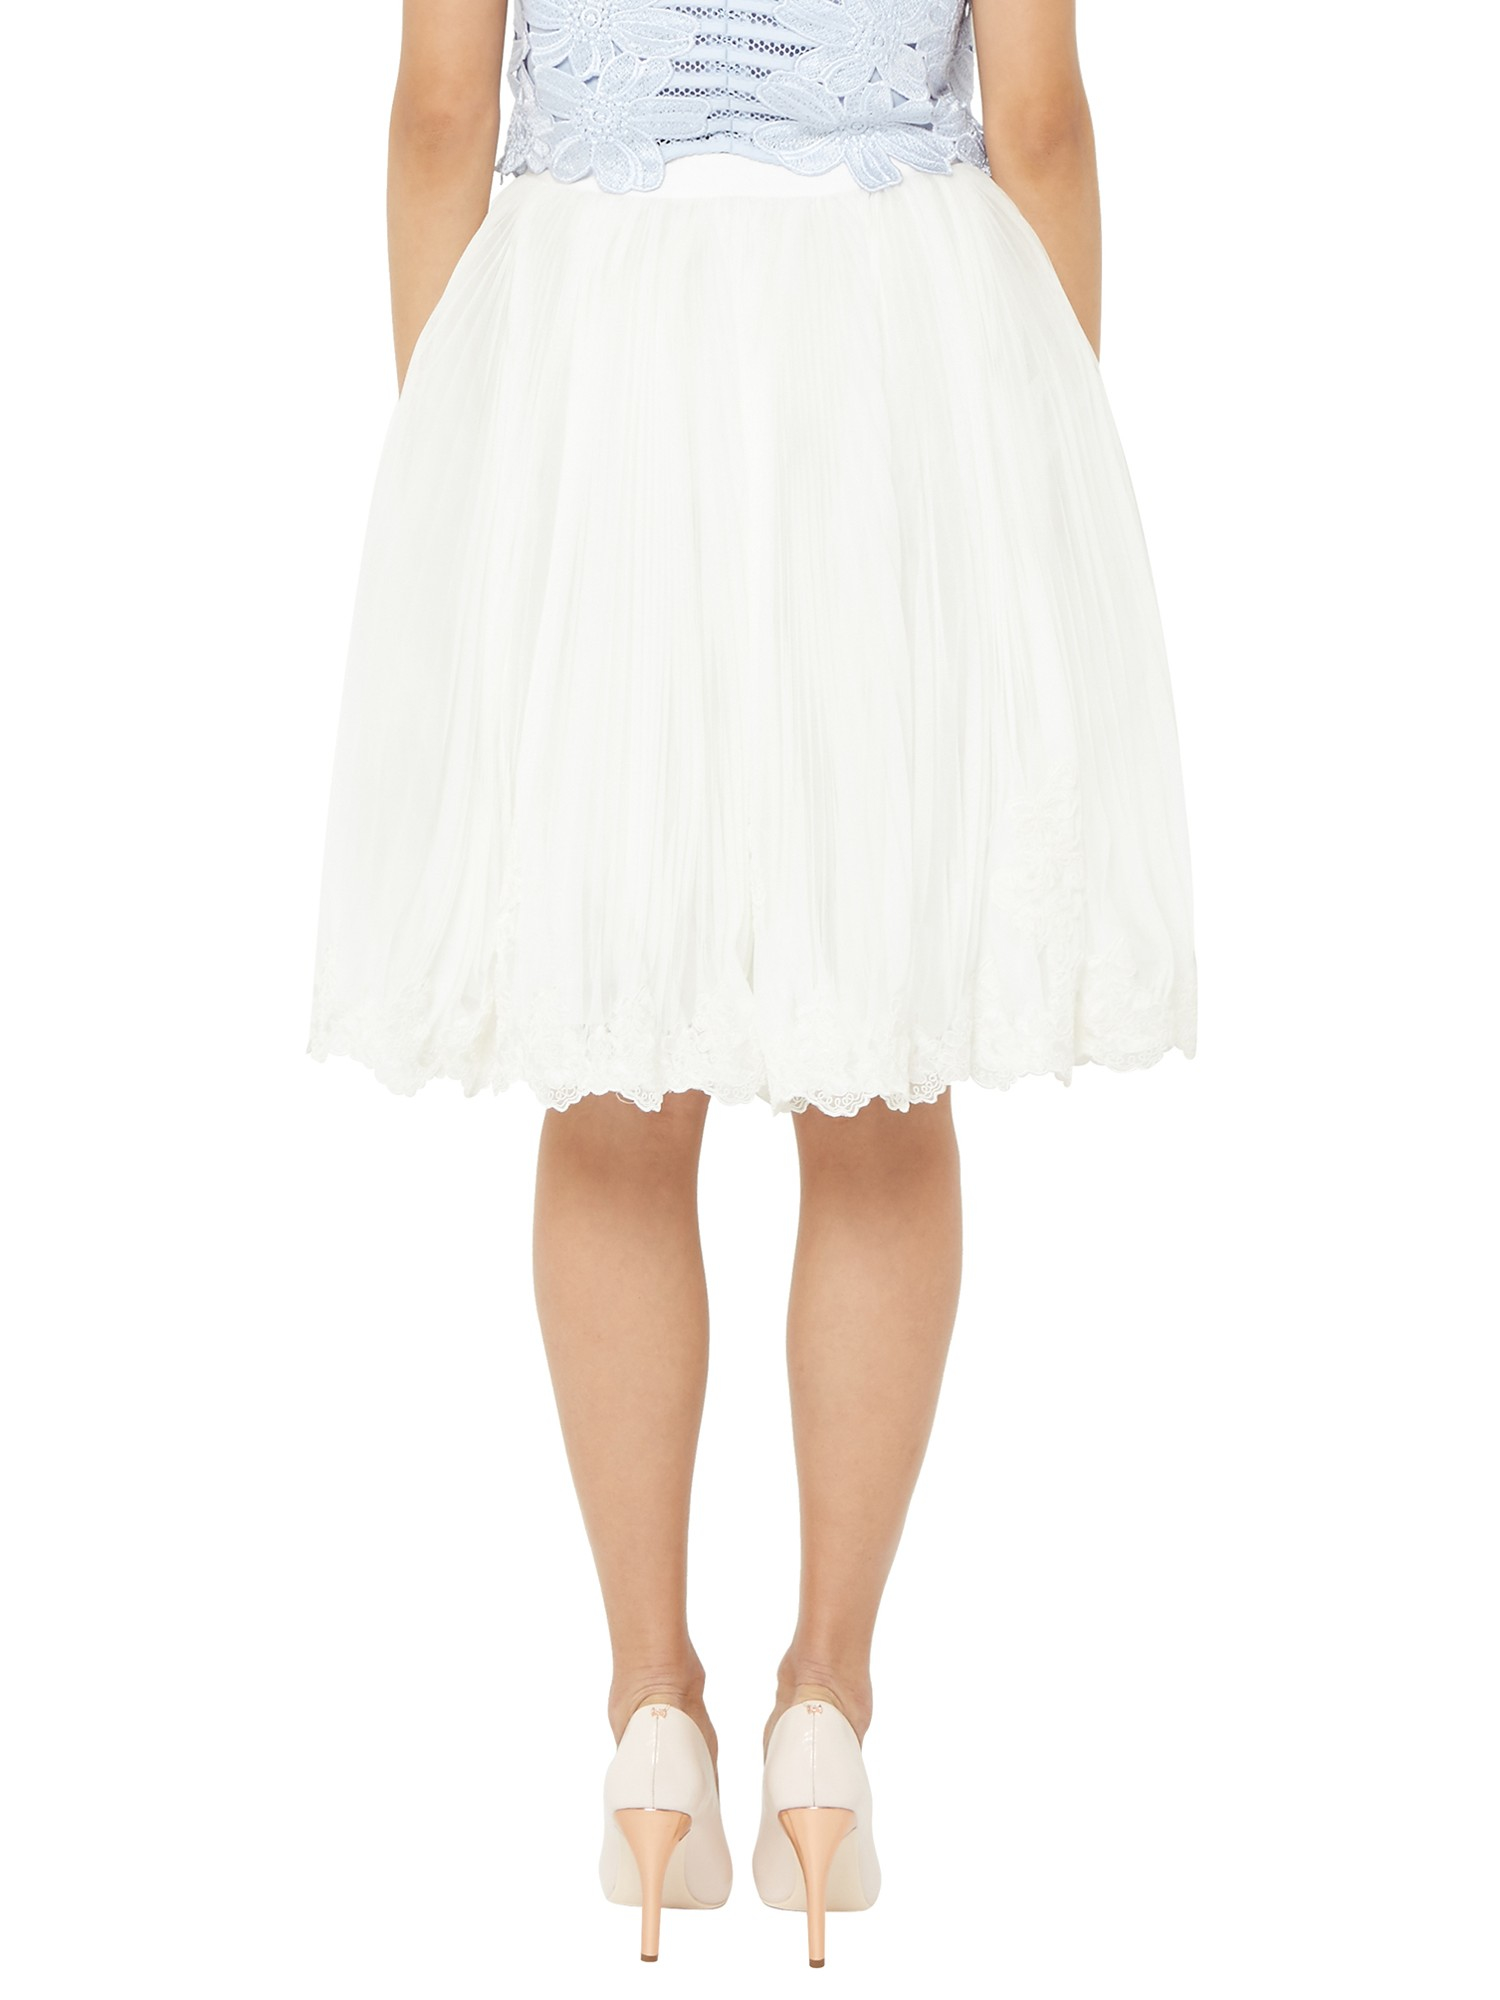 9bcfd13c24 Ted Baker Rynna Lace Scalloped Hem Tutu Skirt in White - Lyst